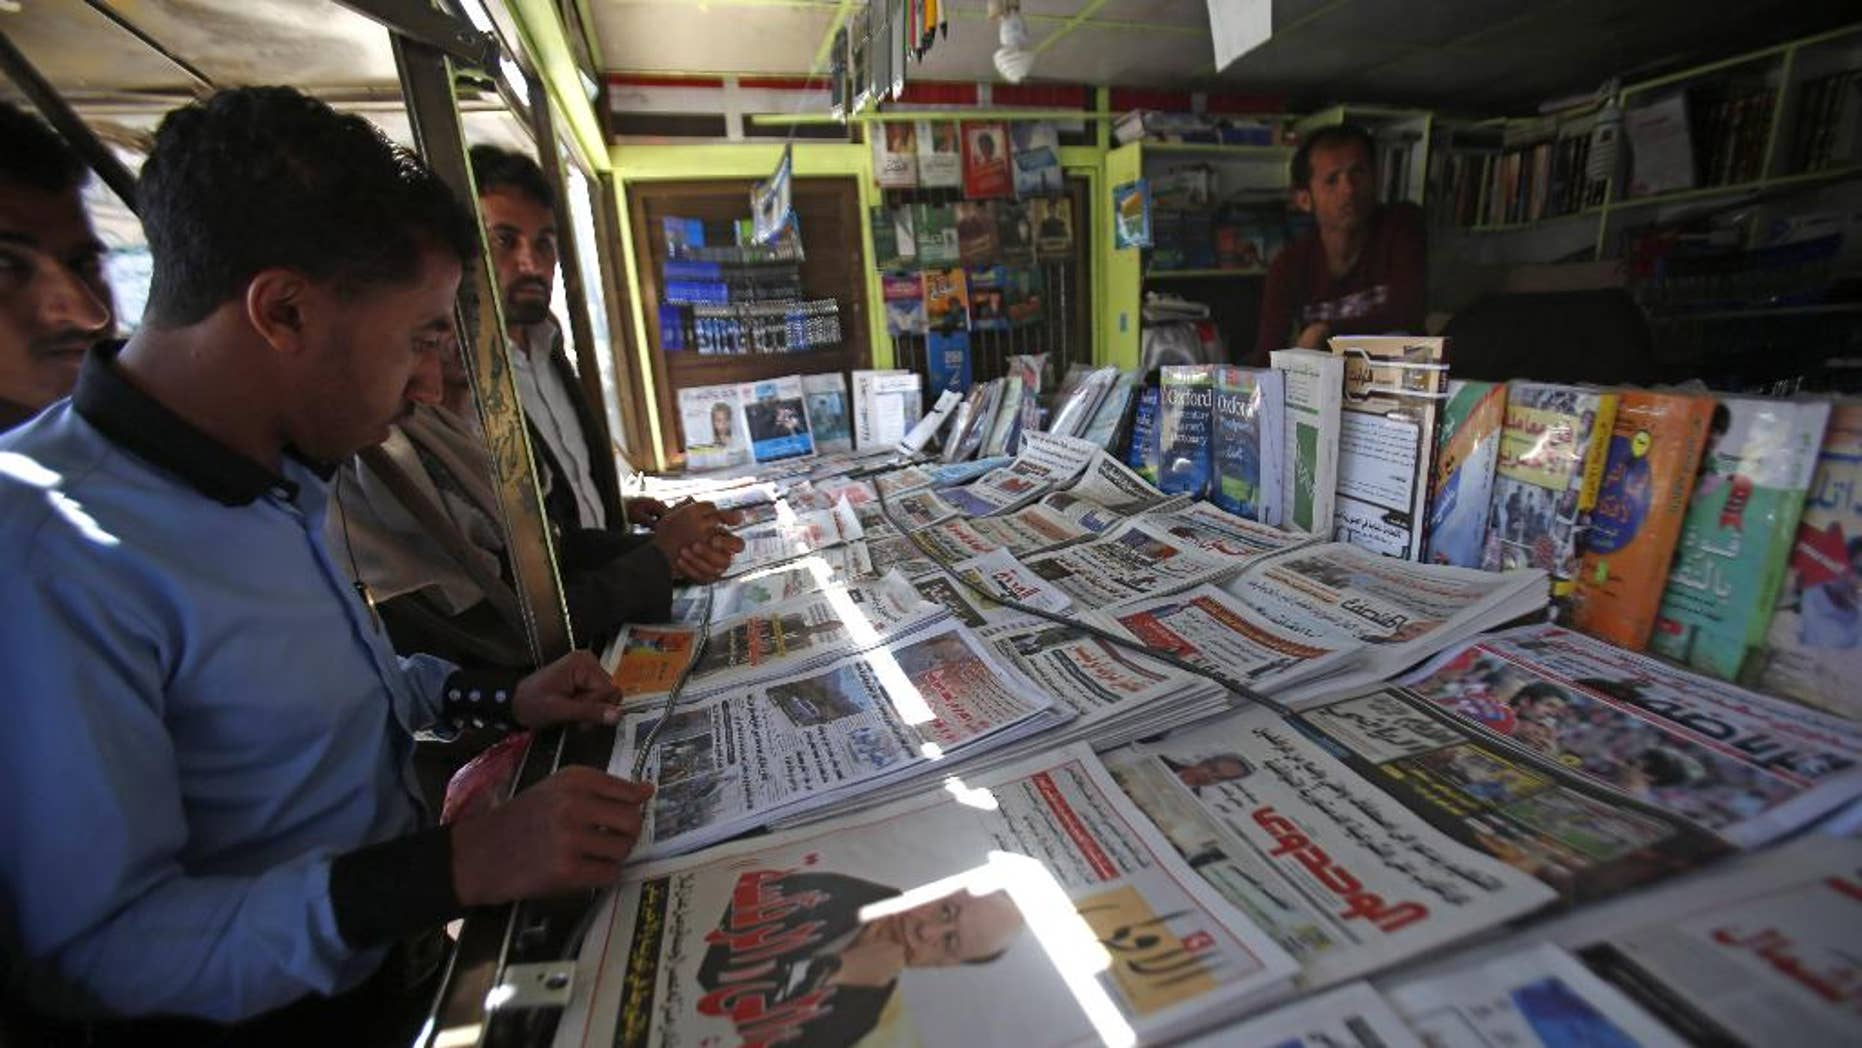 """A Yemeni man reads a newspaper featuring the front page with a photograph of former President Abed Rabbo Mansour Hadi, and a headline in Arabic that reads, """"he escaped to the presidency,"""" in Sanaa, Yemen, Sunday, Feb. 22, 2015. Virtually powerless for months, Yemen's overthrown President Hadi appeared ready to disappear from the country after fleeing Shiite rebels who held him captive in his own home. But the soft-spoken technocrat who long has avoided the limelight stepped back into it Saturday by renouncing his own resignation and challenging the Shiite Houthi rebels who hold control the capital and large parts of the country. (AP Photo/Hani Mohammed)"""